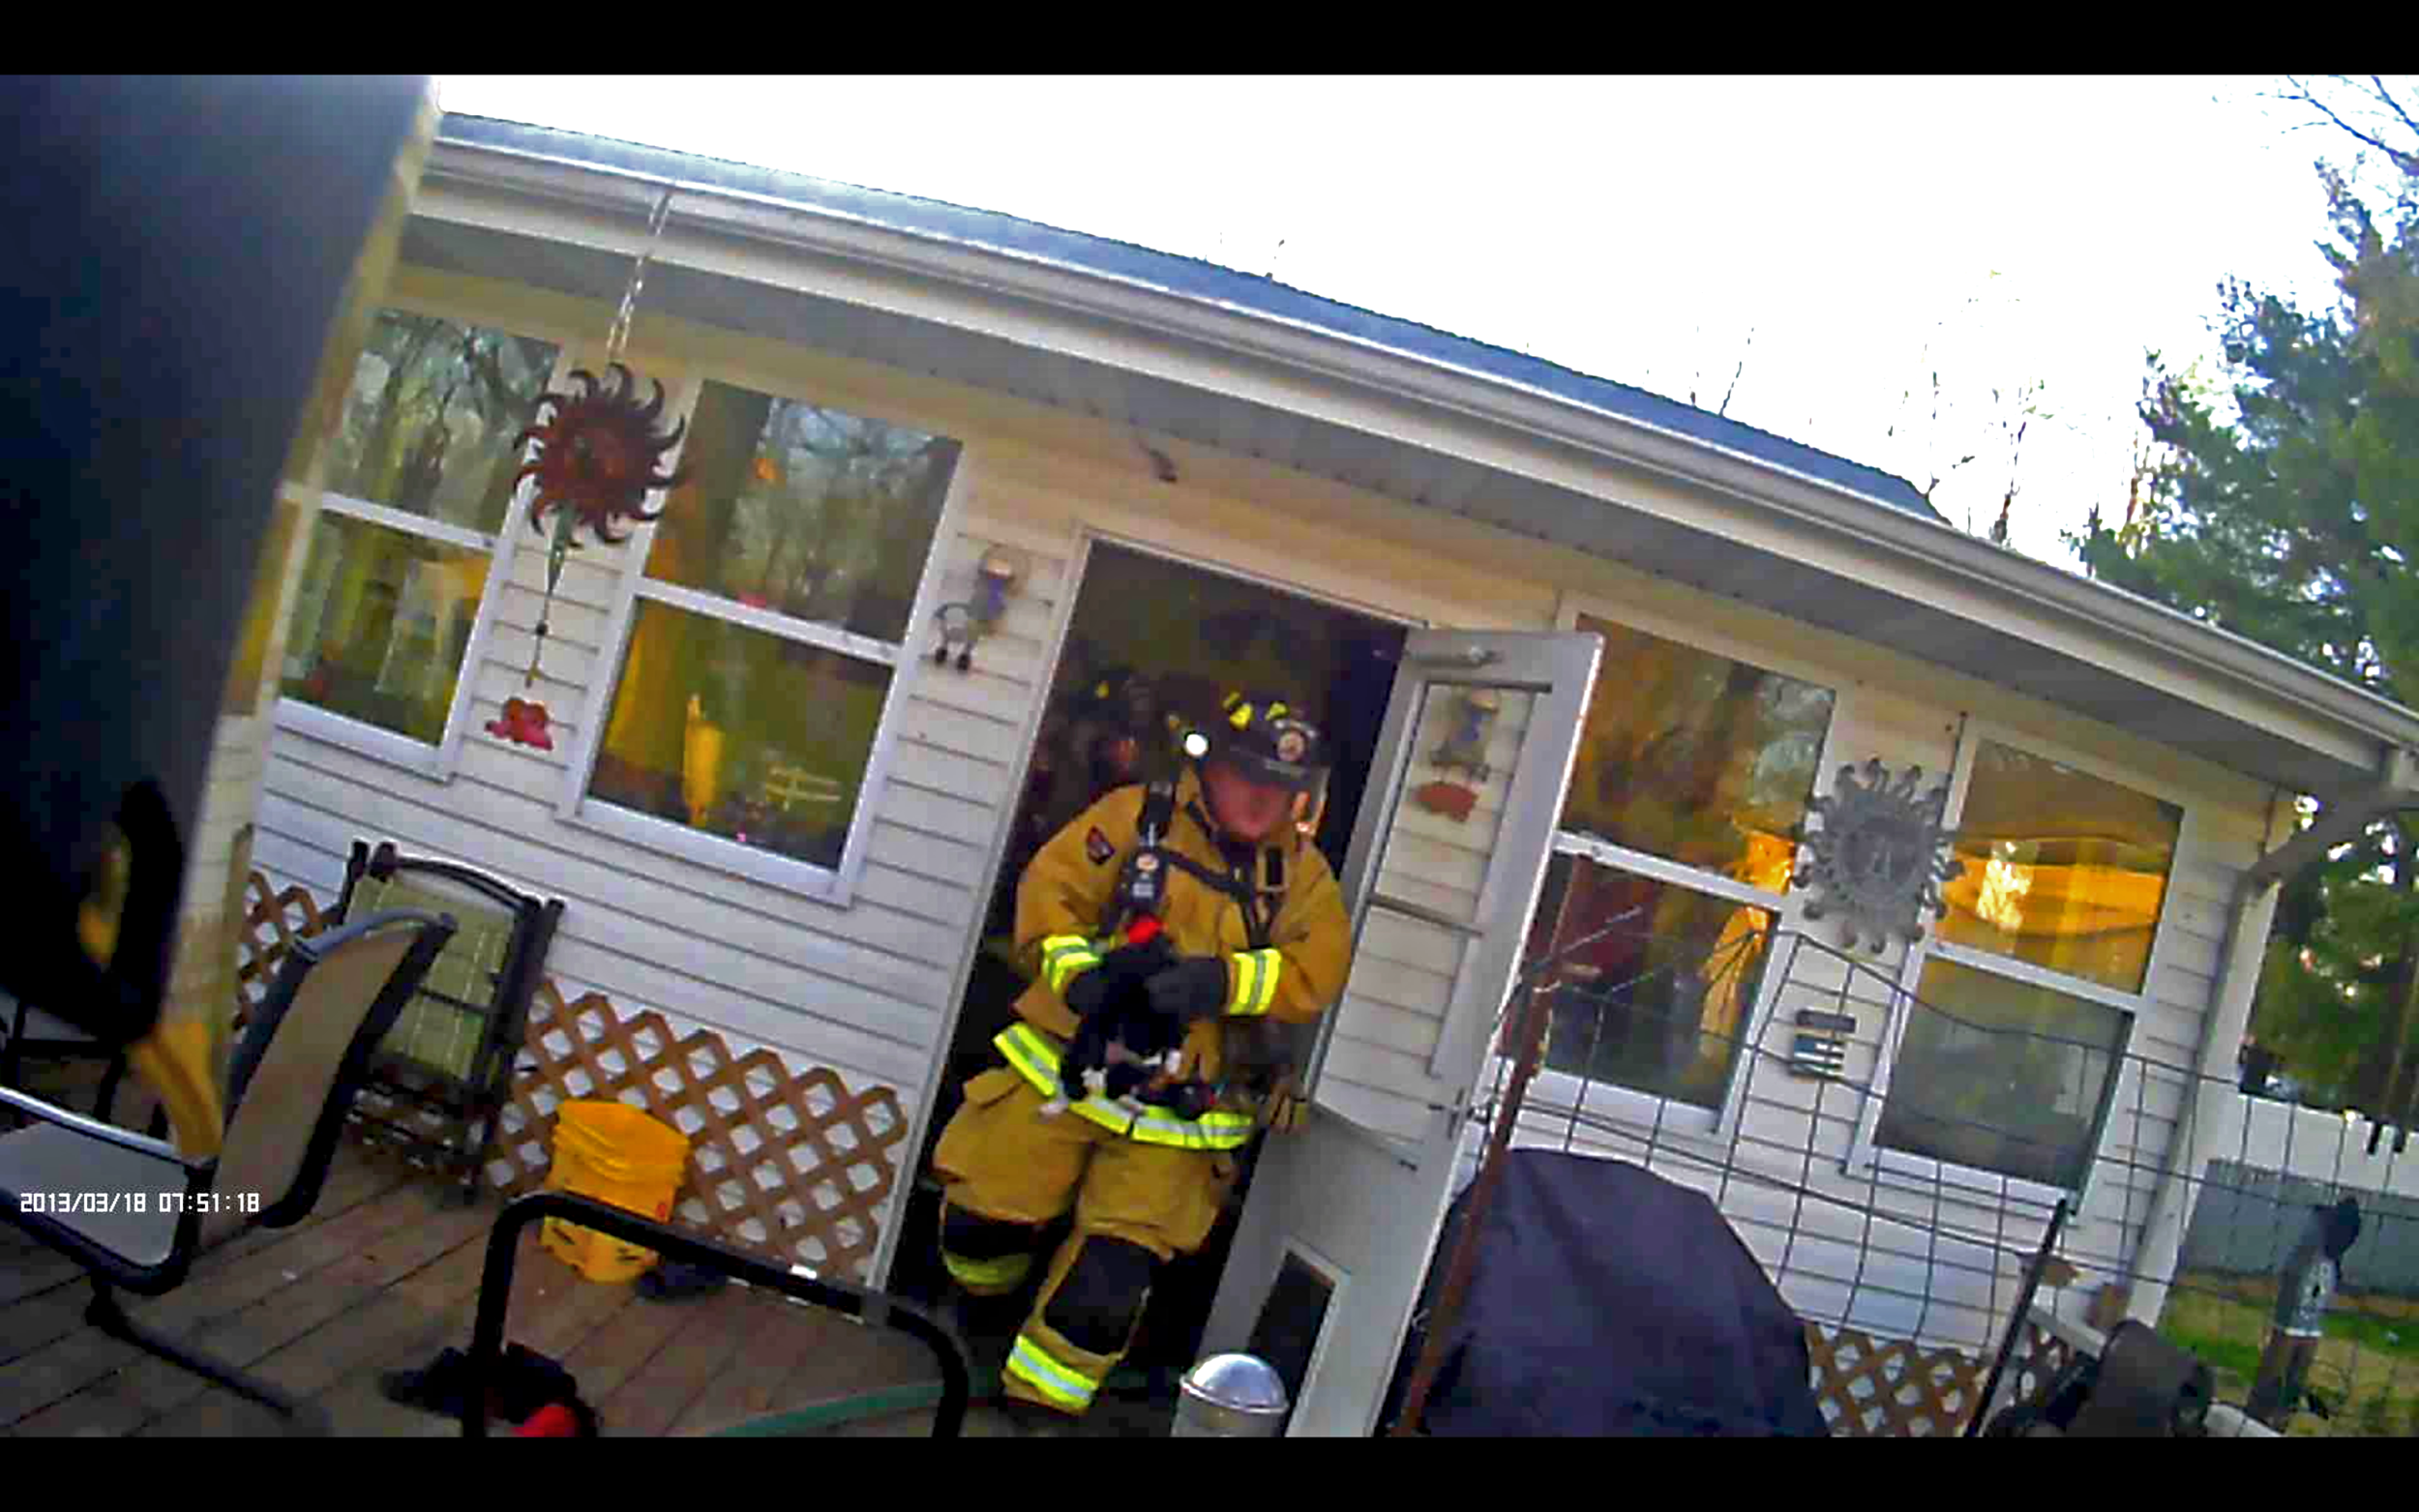 On 3 April 2016, ESFD responded to a report of a structure fire. Pictured is Firefighter Stock rescuing a pet from the residence. Firefighters were able to extinguish the fire in its room of origin, saving the home from further damage.